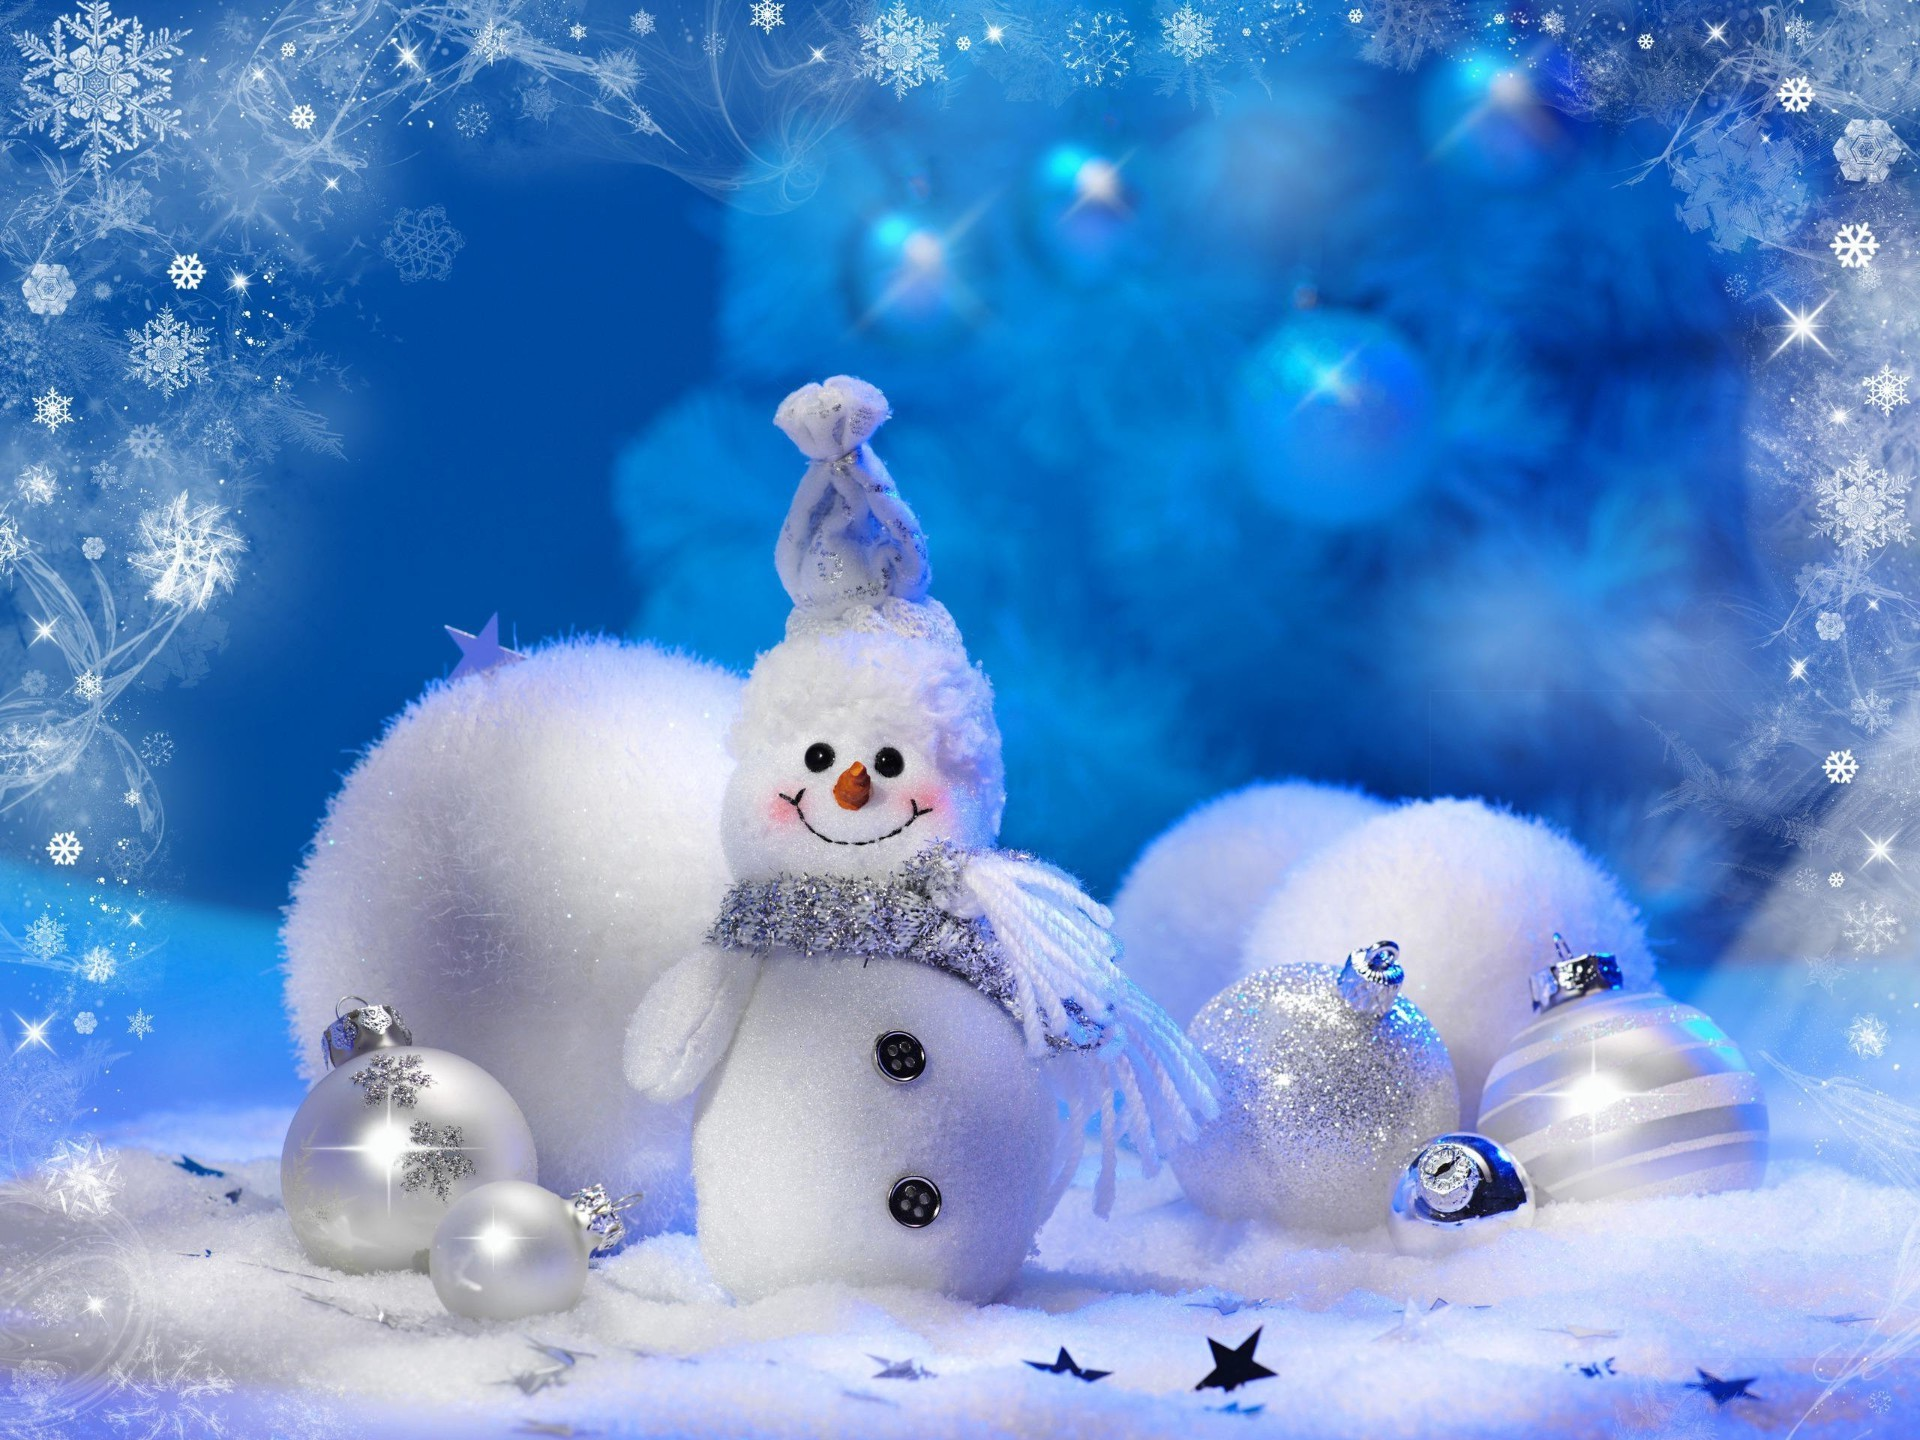 cheerful snowman. desktop wallpapers for free.